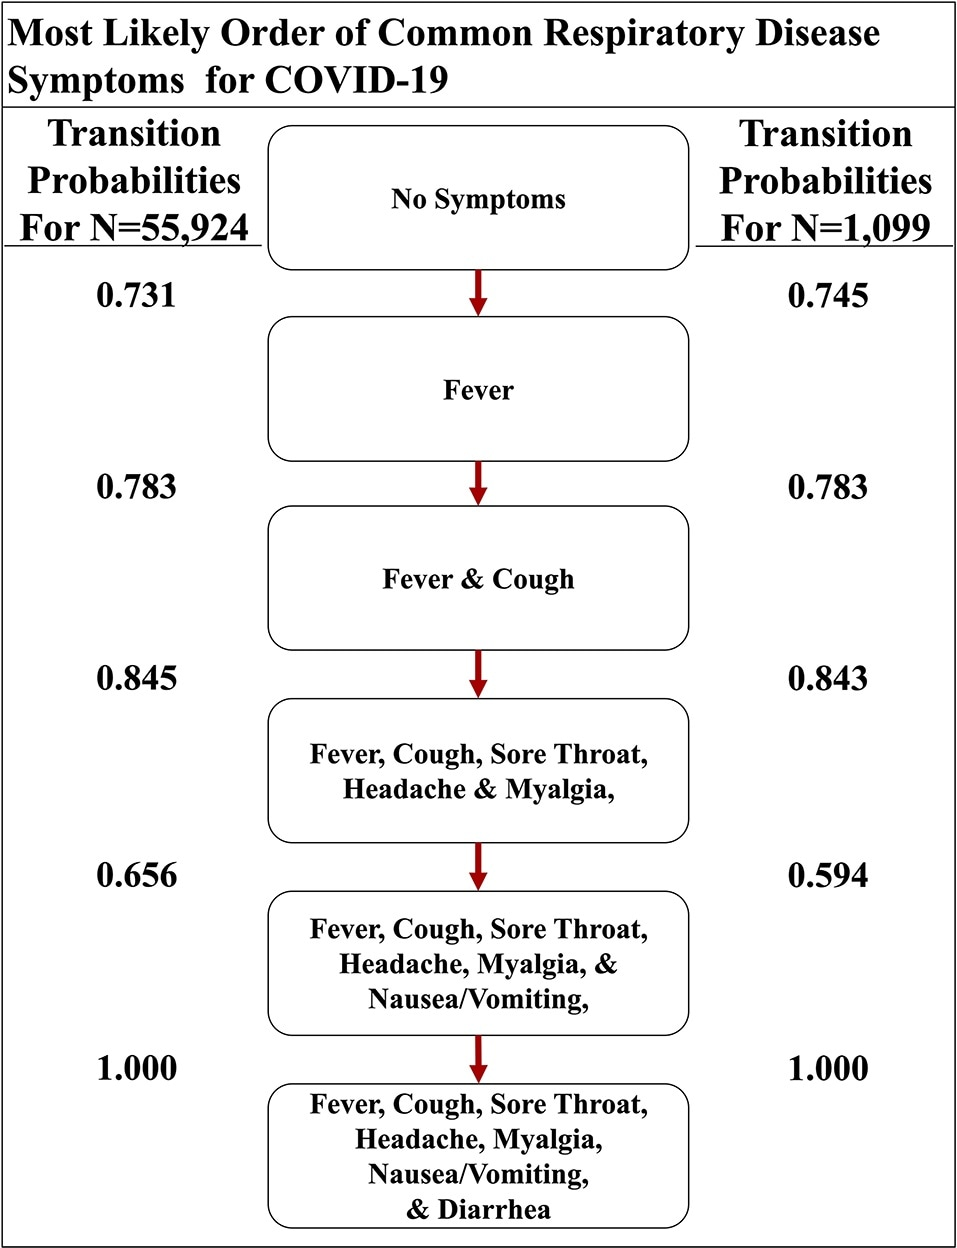 The most likely path of common respiratory symptoms in COVID-19. The most likely path of seven common symptoms of COVID-19, determined by the transition probabilities that are also listed between nodes, of two datasets here.